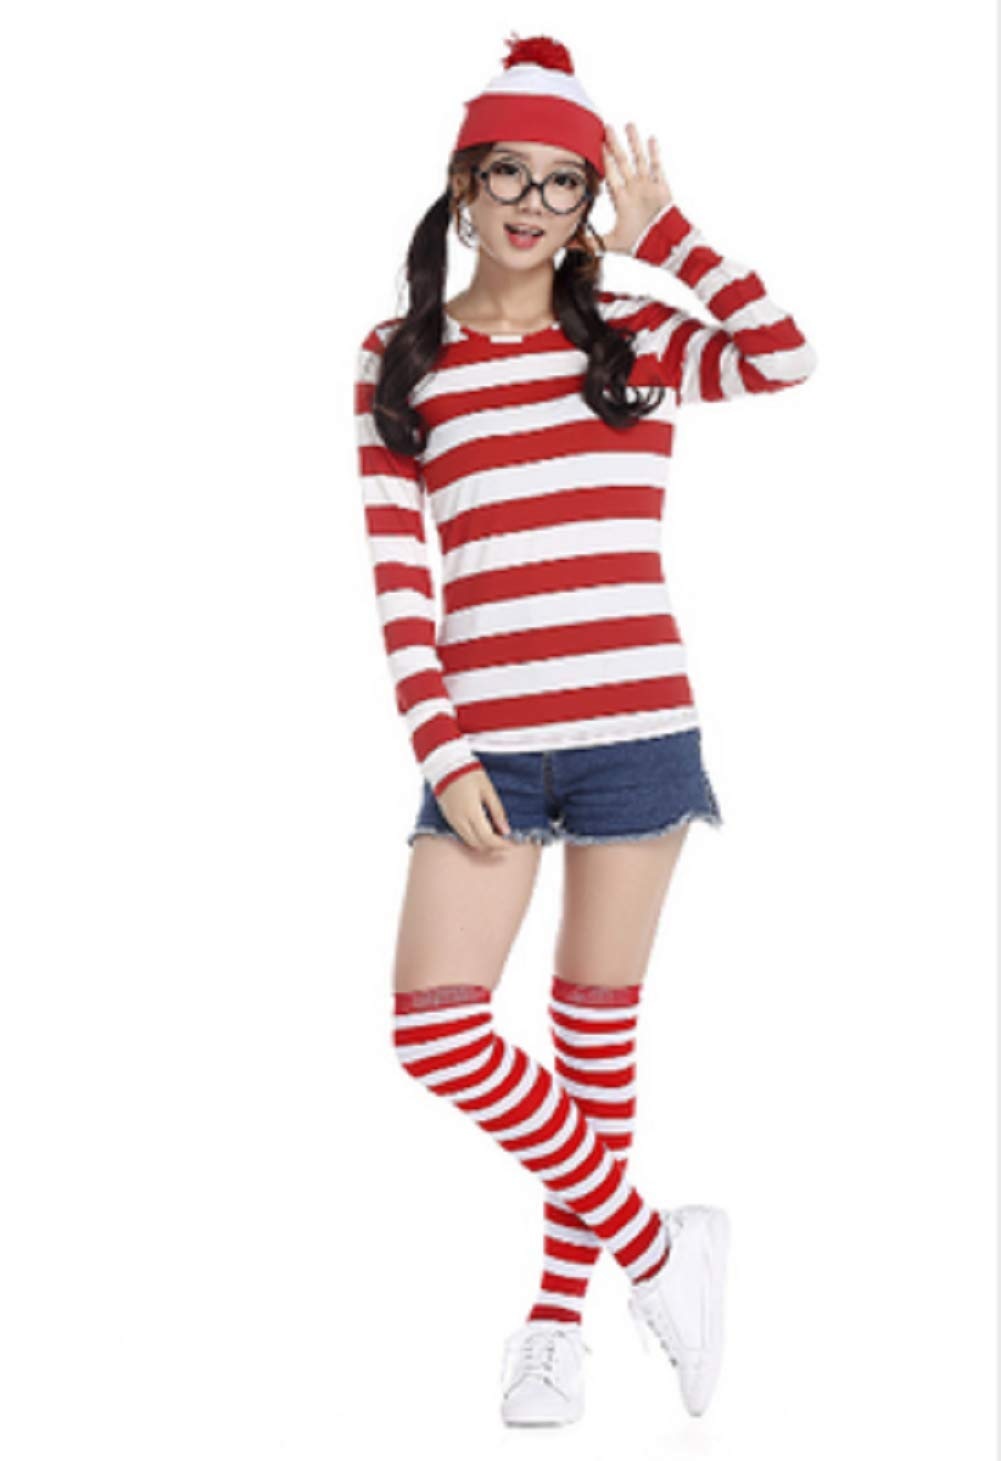 Taipin Where's Waldo Costume Funny Sweatshirt Outfit Glasses Suits